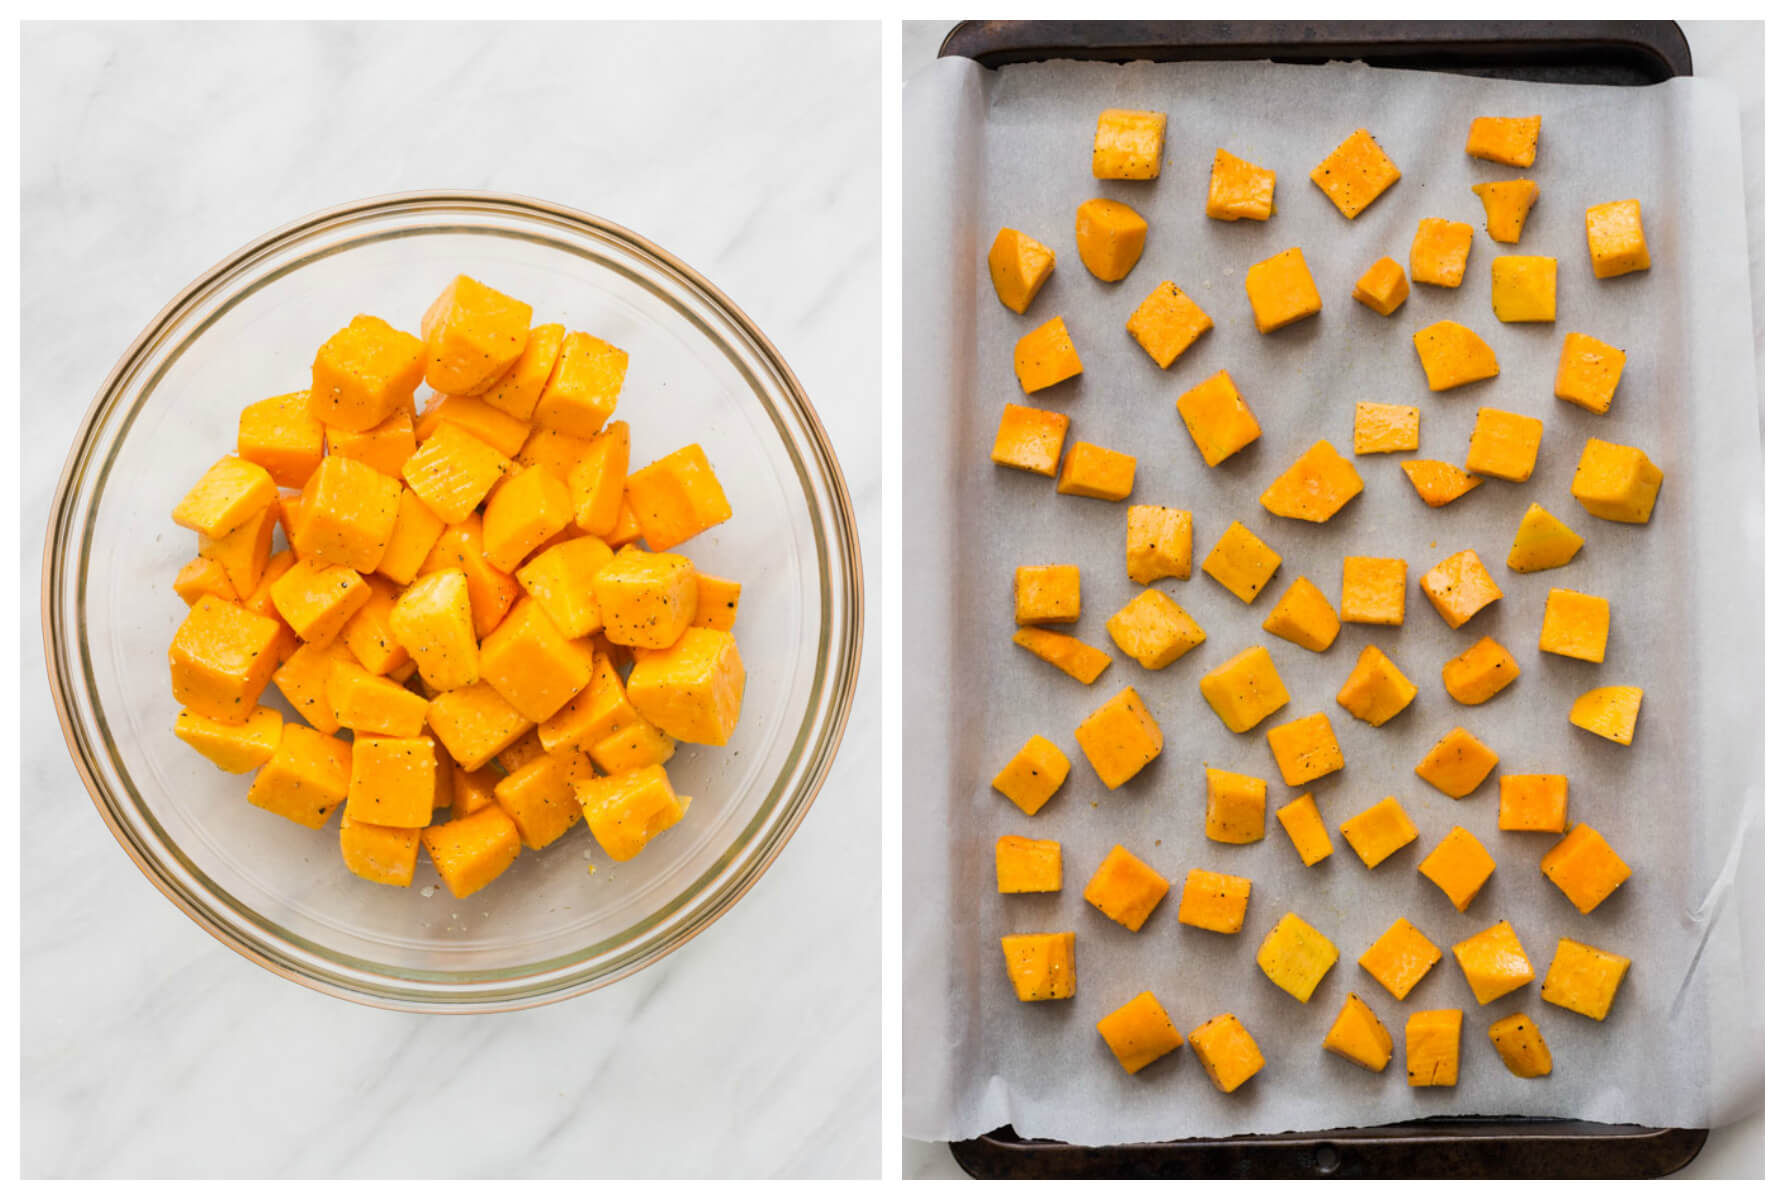 Chopped butternut squash in a bowl and a tray